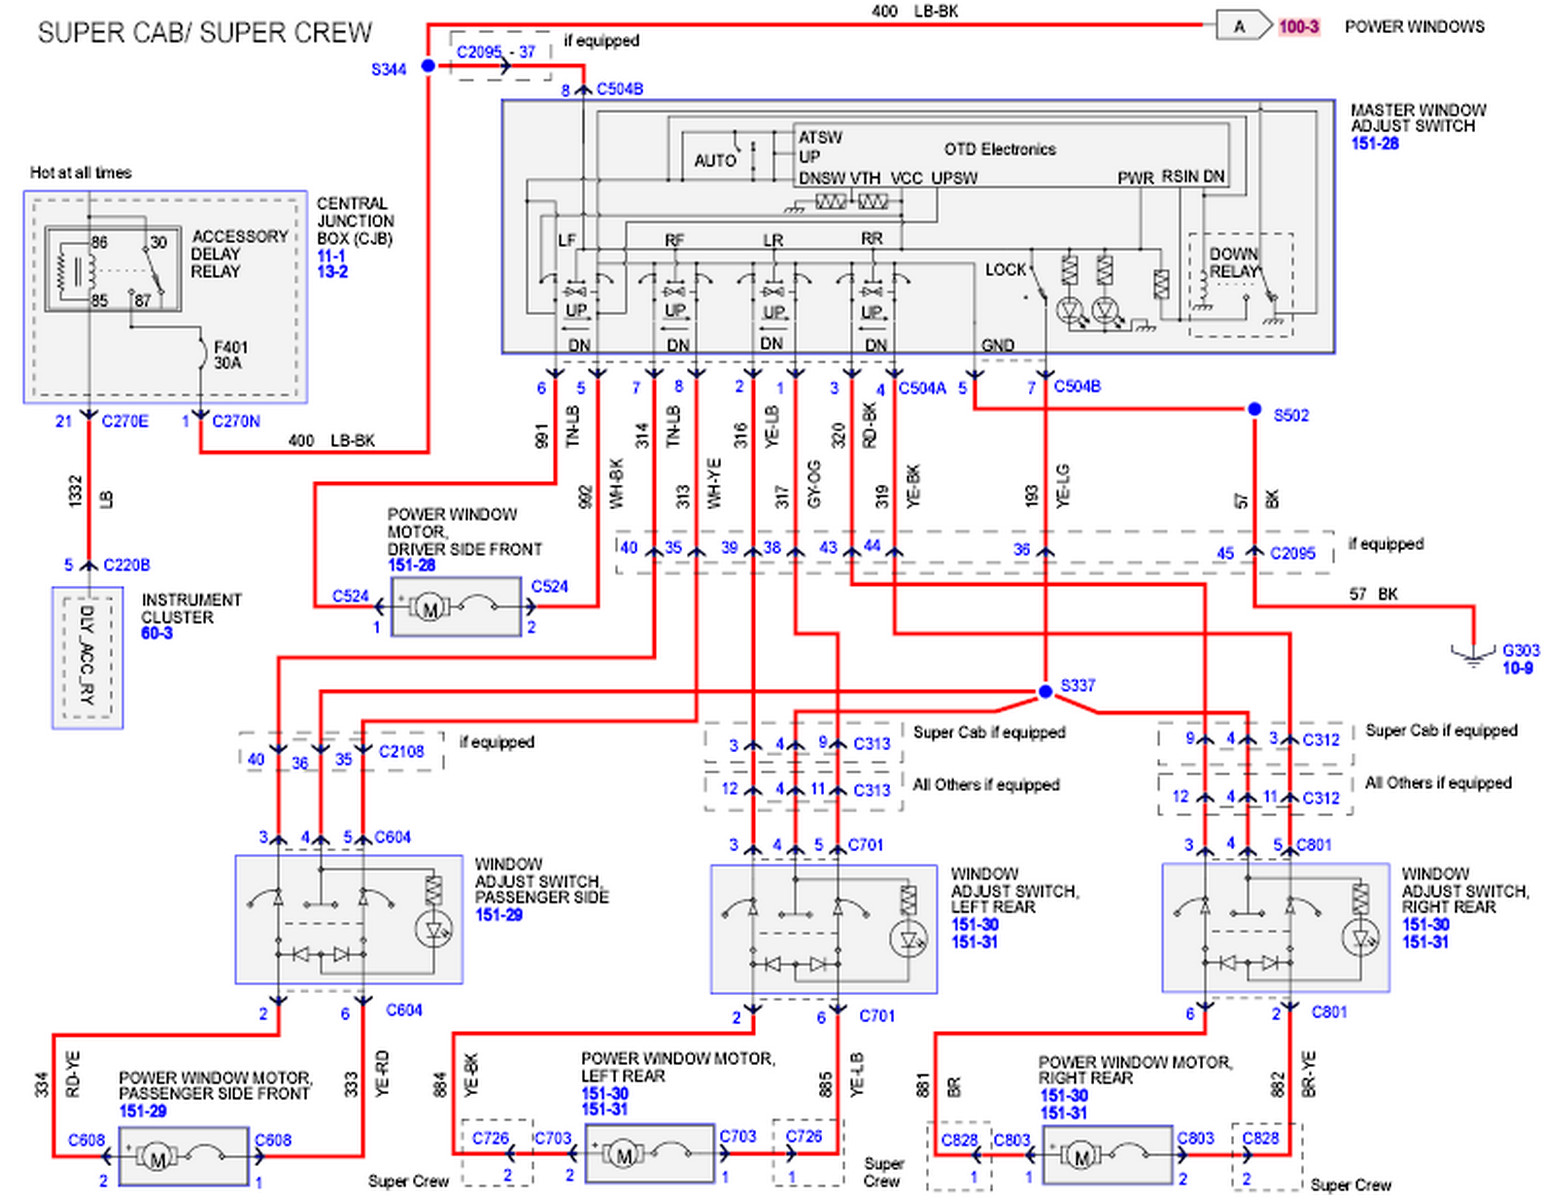 Wiring Switch Door Power Diagram Pigtail Trusted Gm Joe The Auto Guy 2004 2008 Ford F 150 Rear Windows Inoperative Window